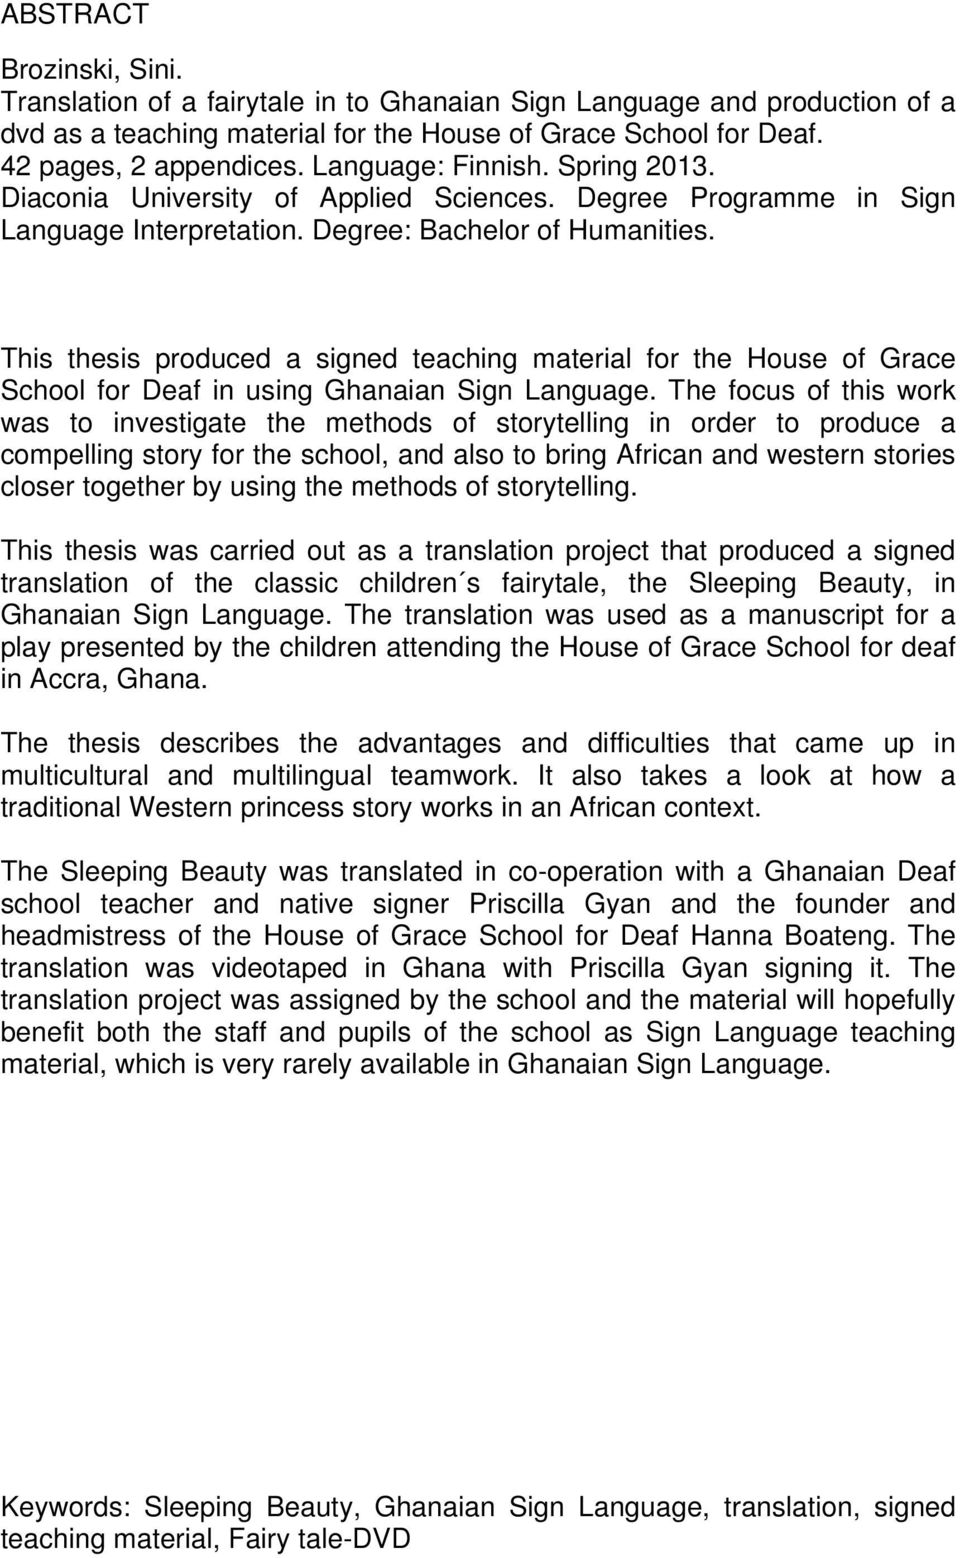 This thesis produced a signed teaching material for the House of Grace School for Deaf in using Ghanaian Sign Language.